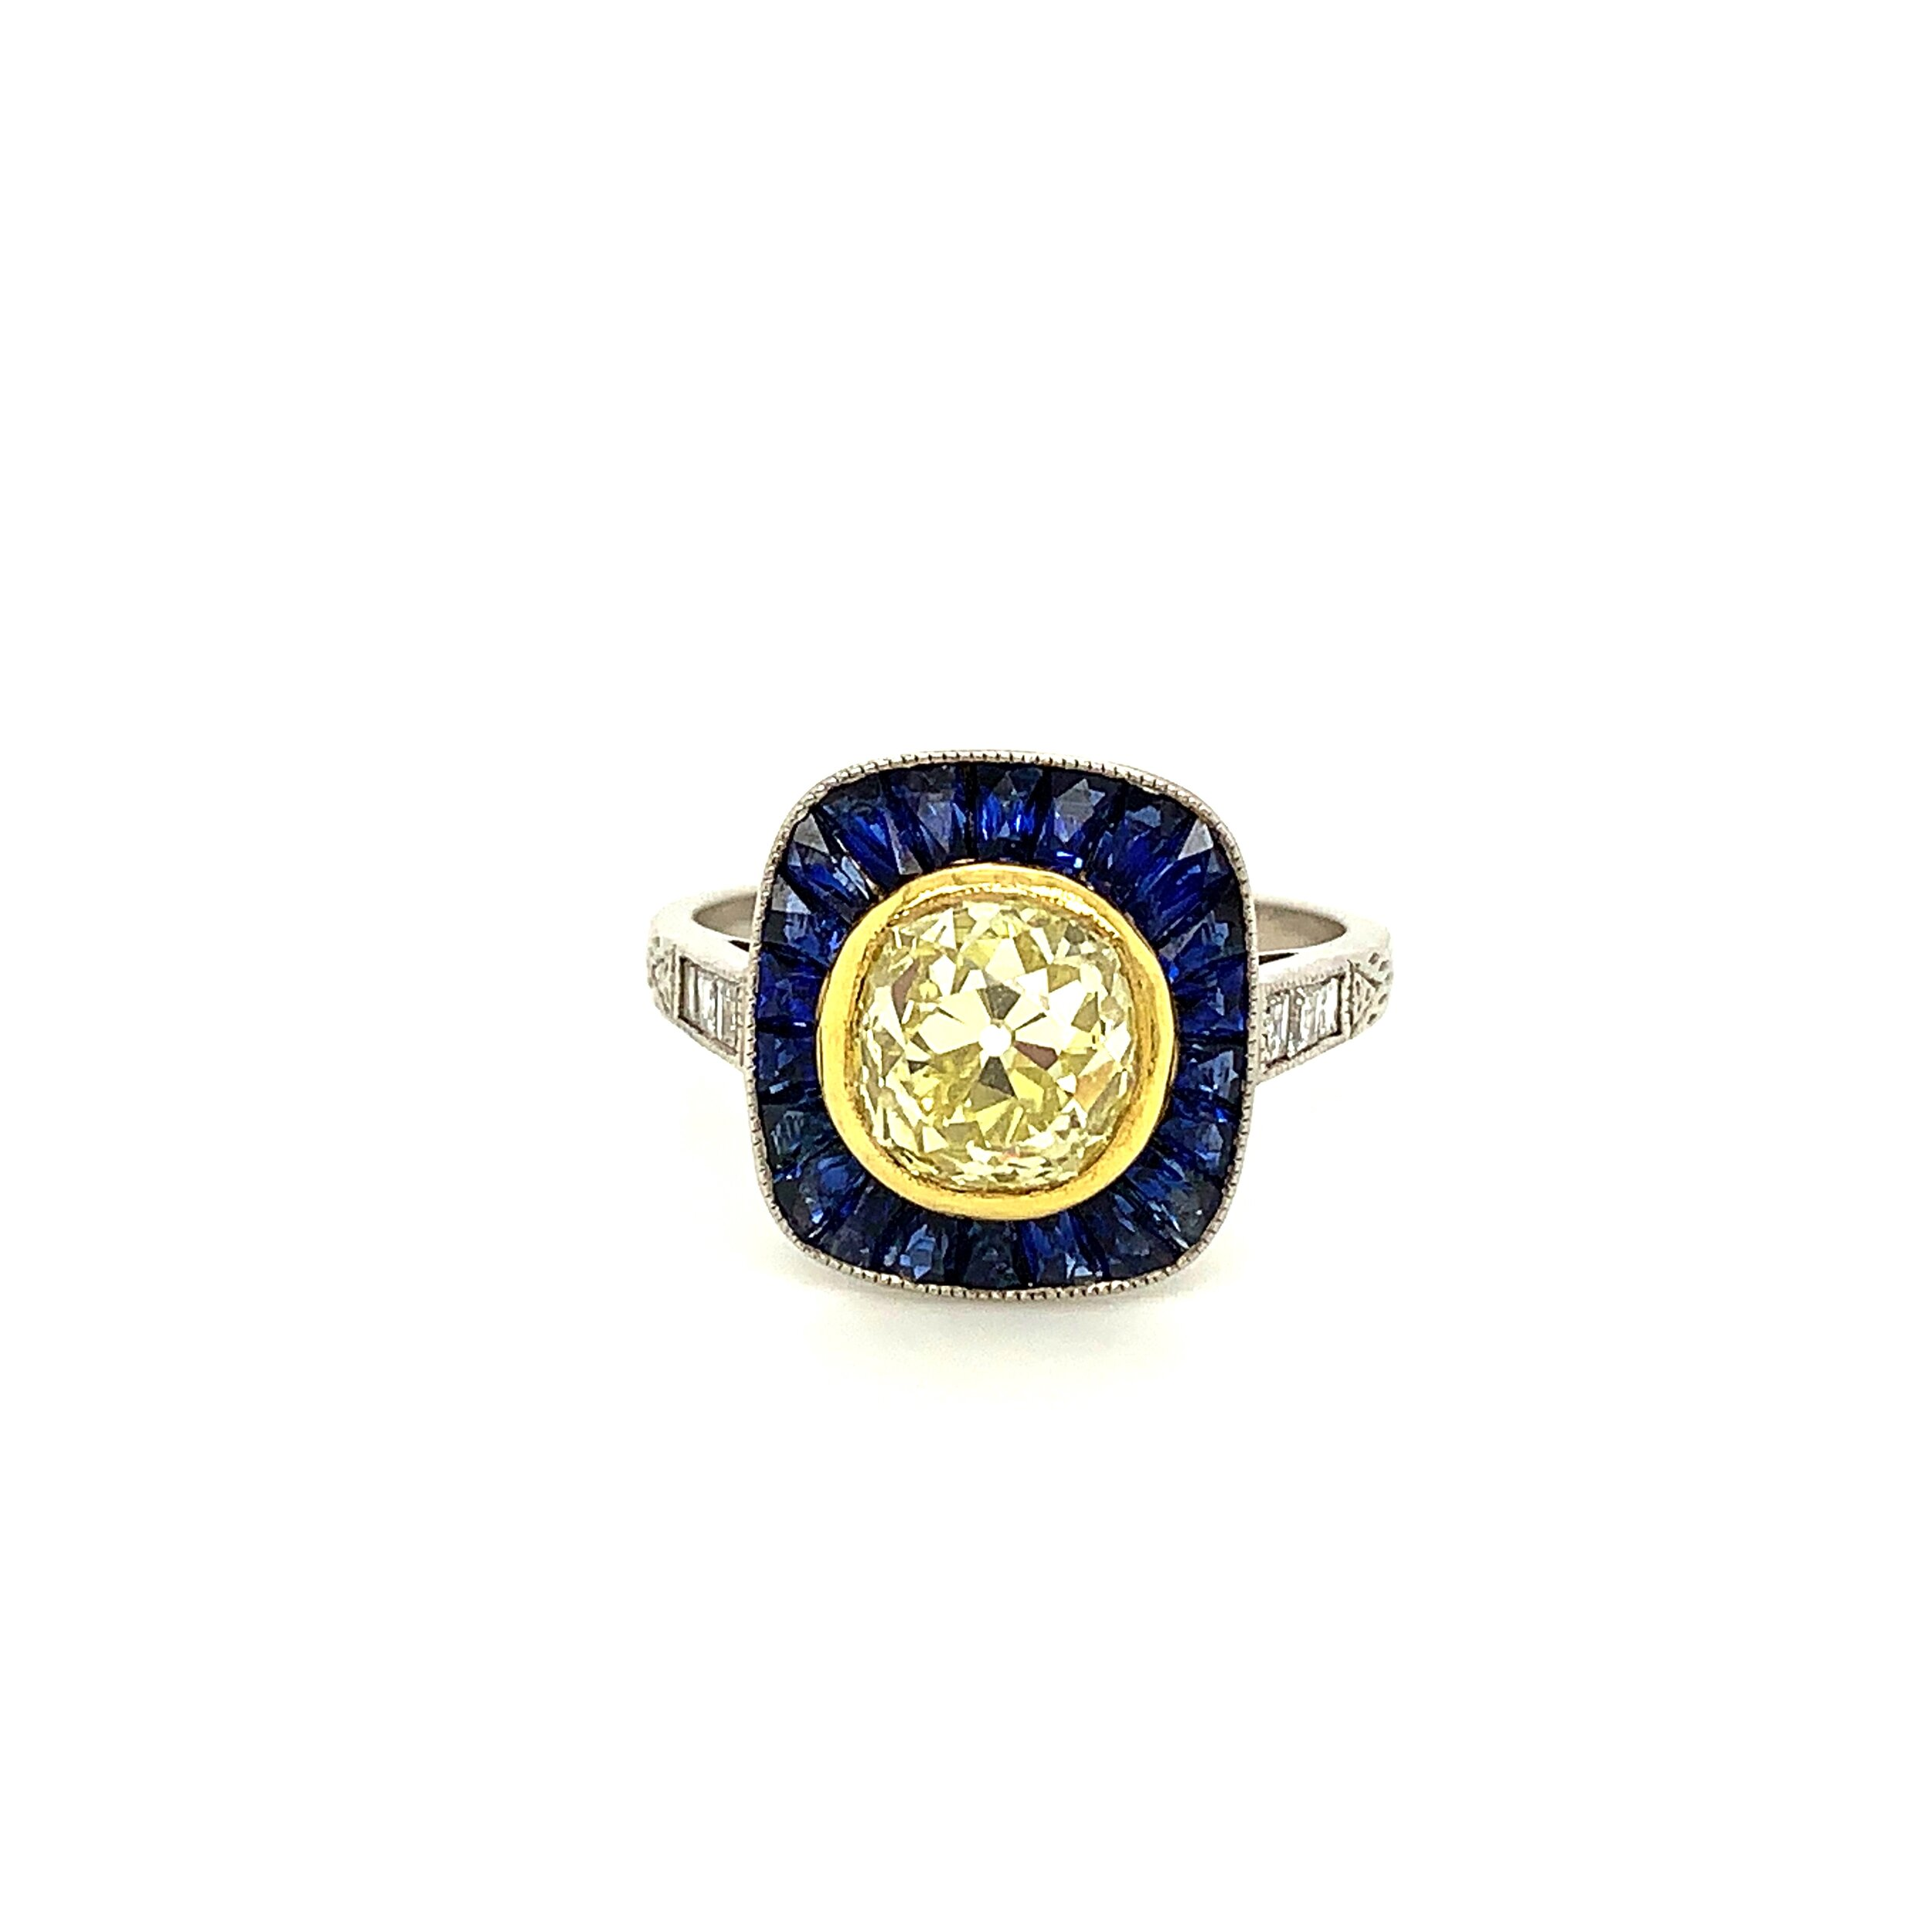 Deco-Style Fancy Yellow Solitaire Ring Surrounded with Sapphires.  Est. US$ 12,000-15,000